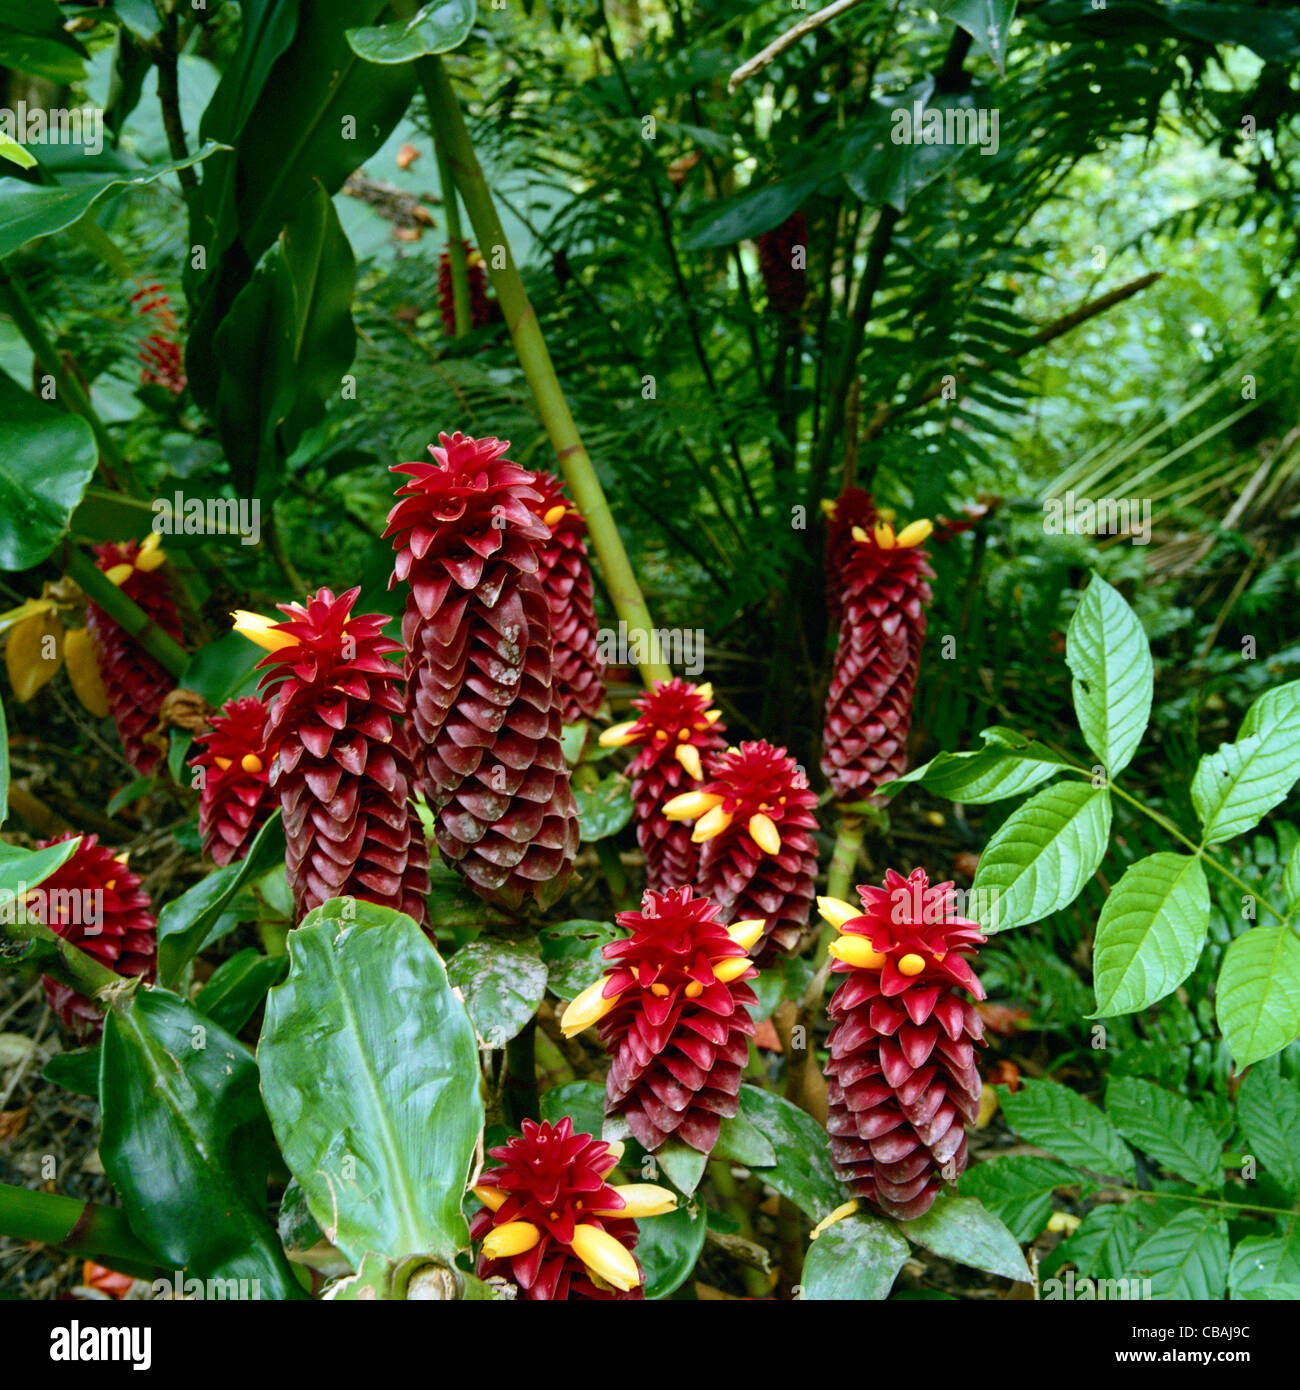 Pineapple ginger flowers big island hawaii stock photo 41415848 alamy pineapple ginger flowers big island hawaii izmirmasajfo